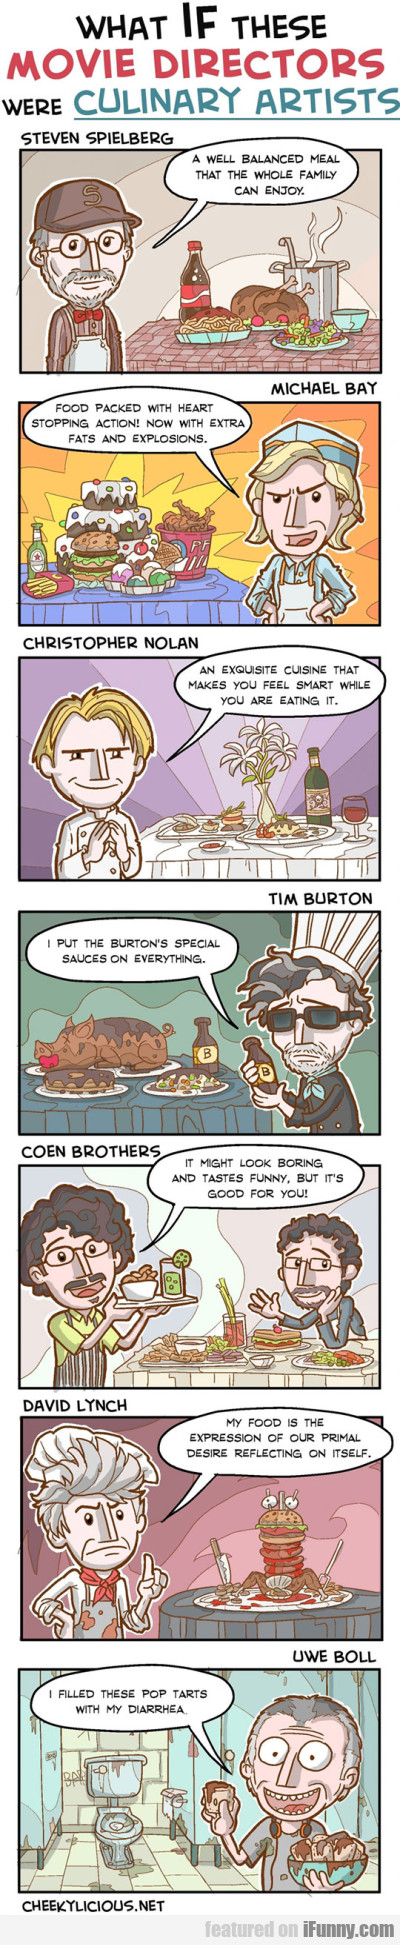 What If These Movie Directors Were Culinary Artist